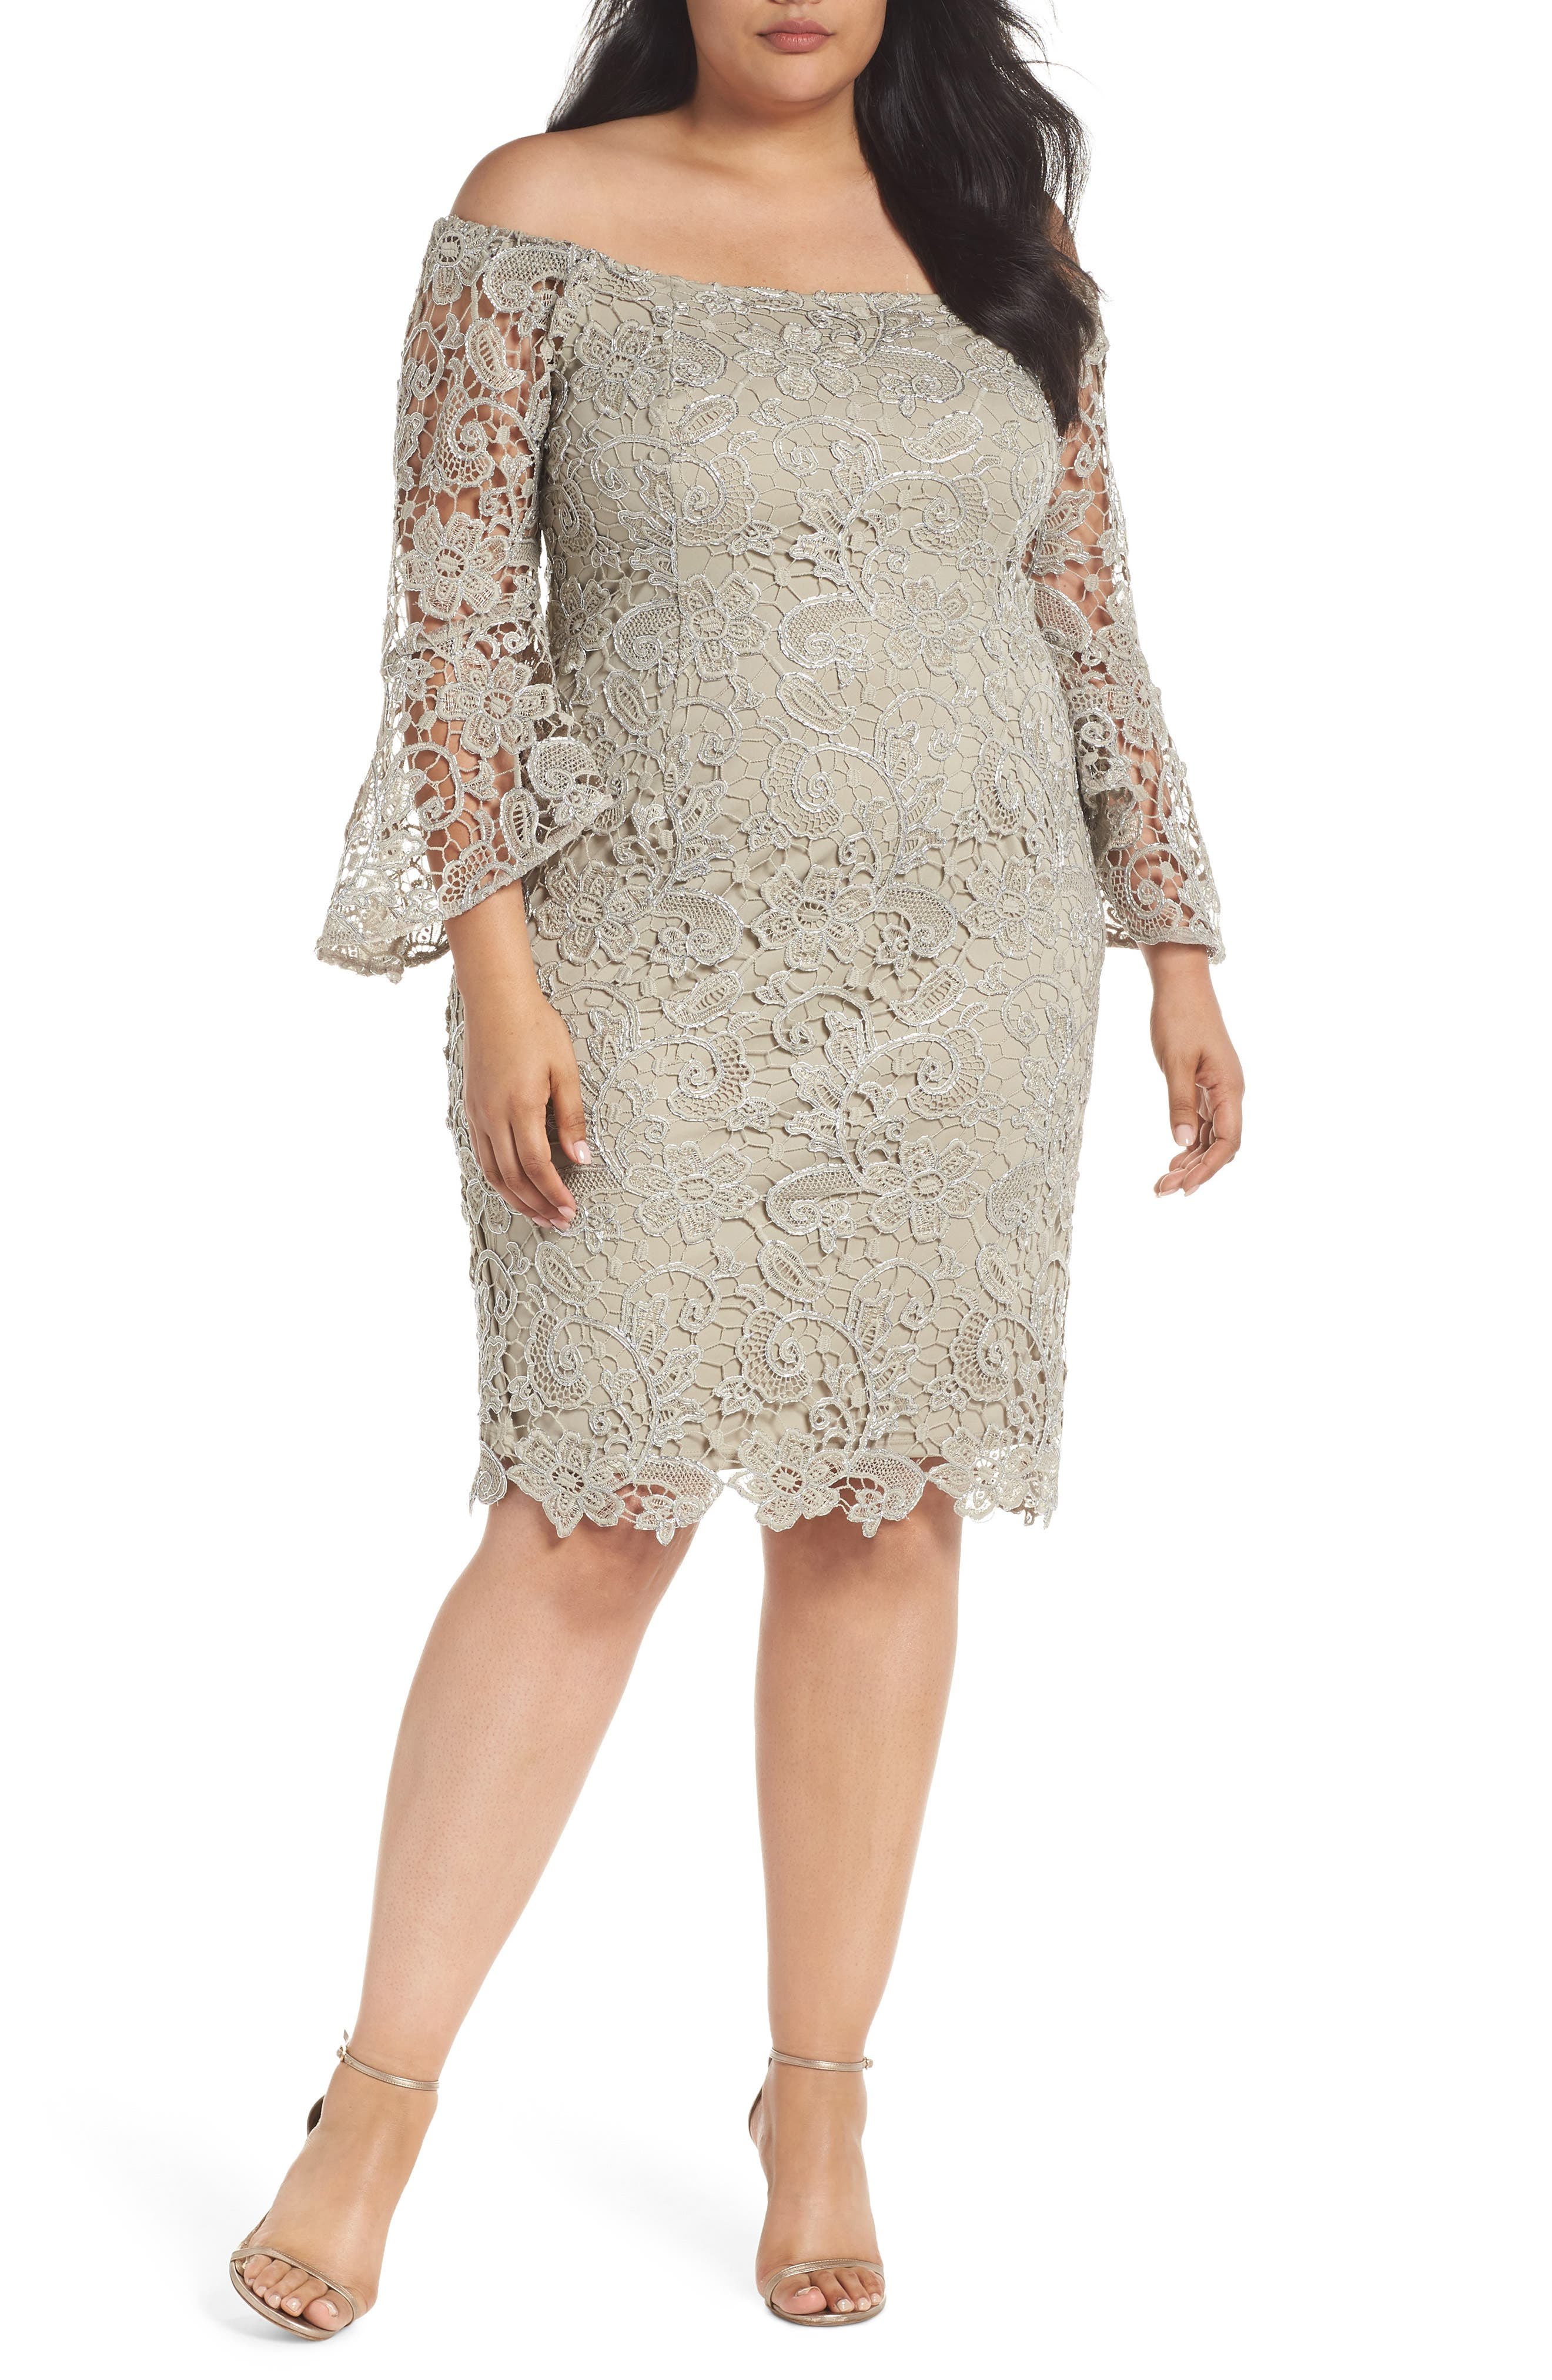 Marina Lace Off the Shoulder Bell Sleeve Dress (Plus Size)